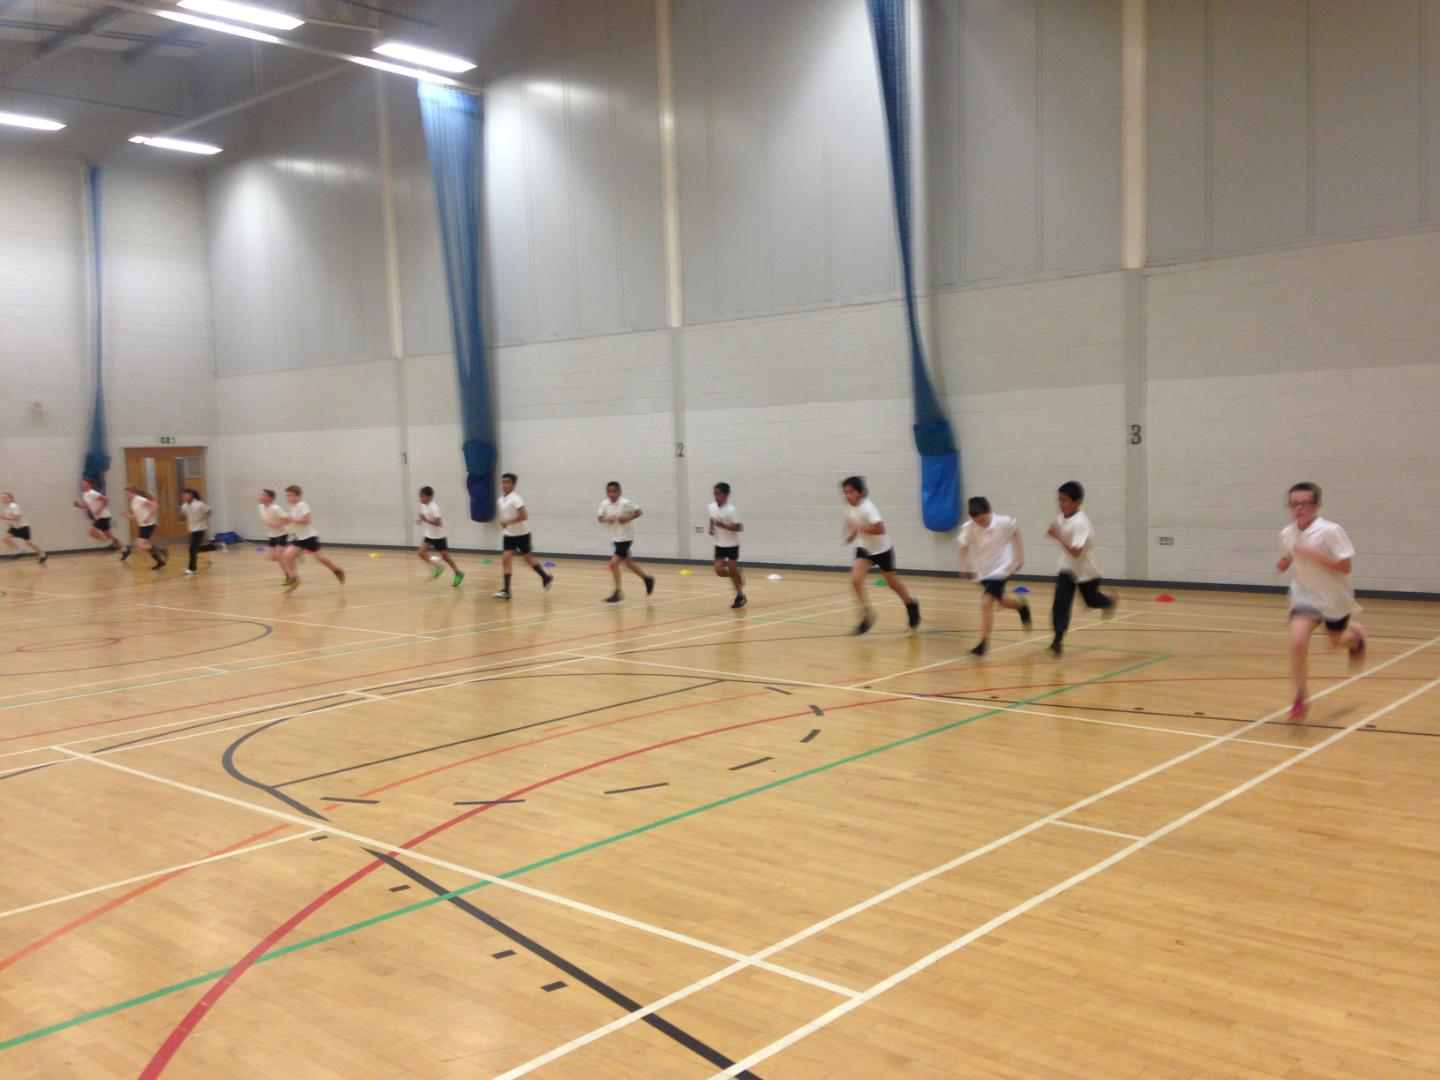 Bleep Test